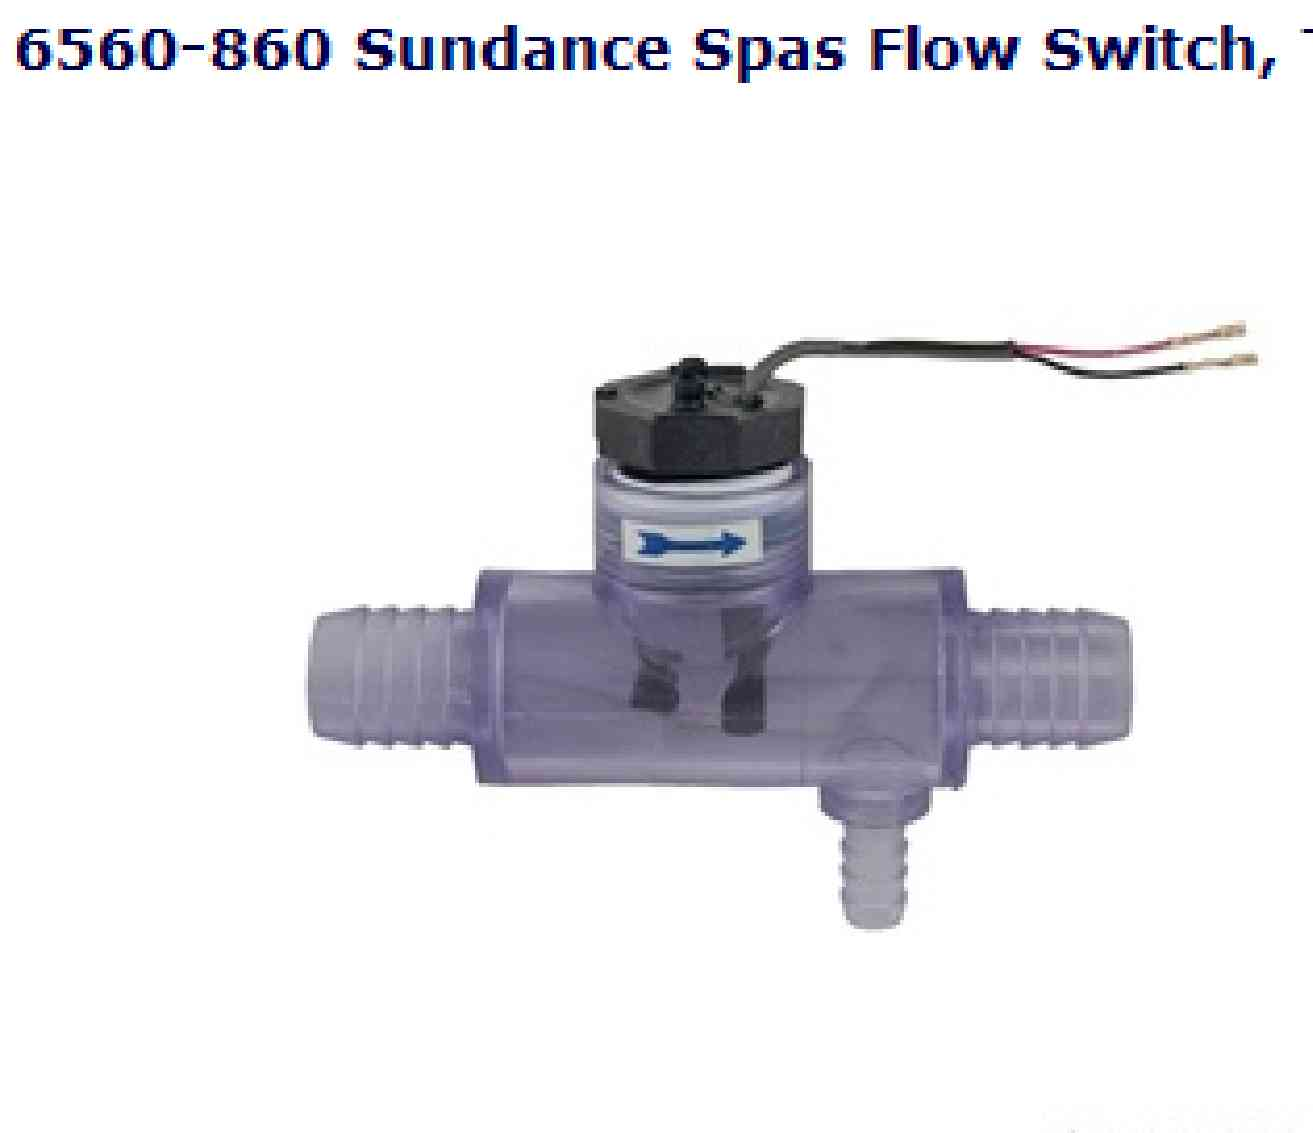 i have 2000 sundance cameo that has a flashing flo message the rh justanswer com Watkins Hot Tub Wiring Hot Tub 220 GFCI Wiring